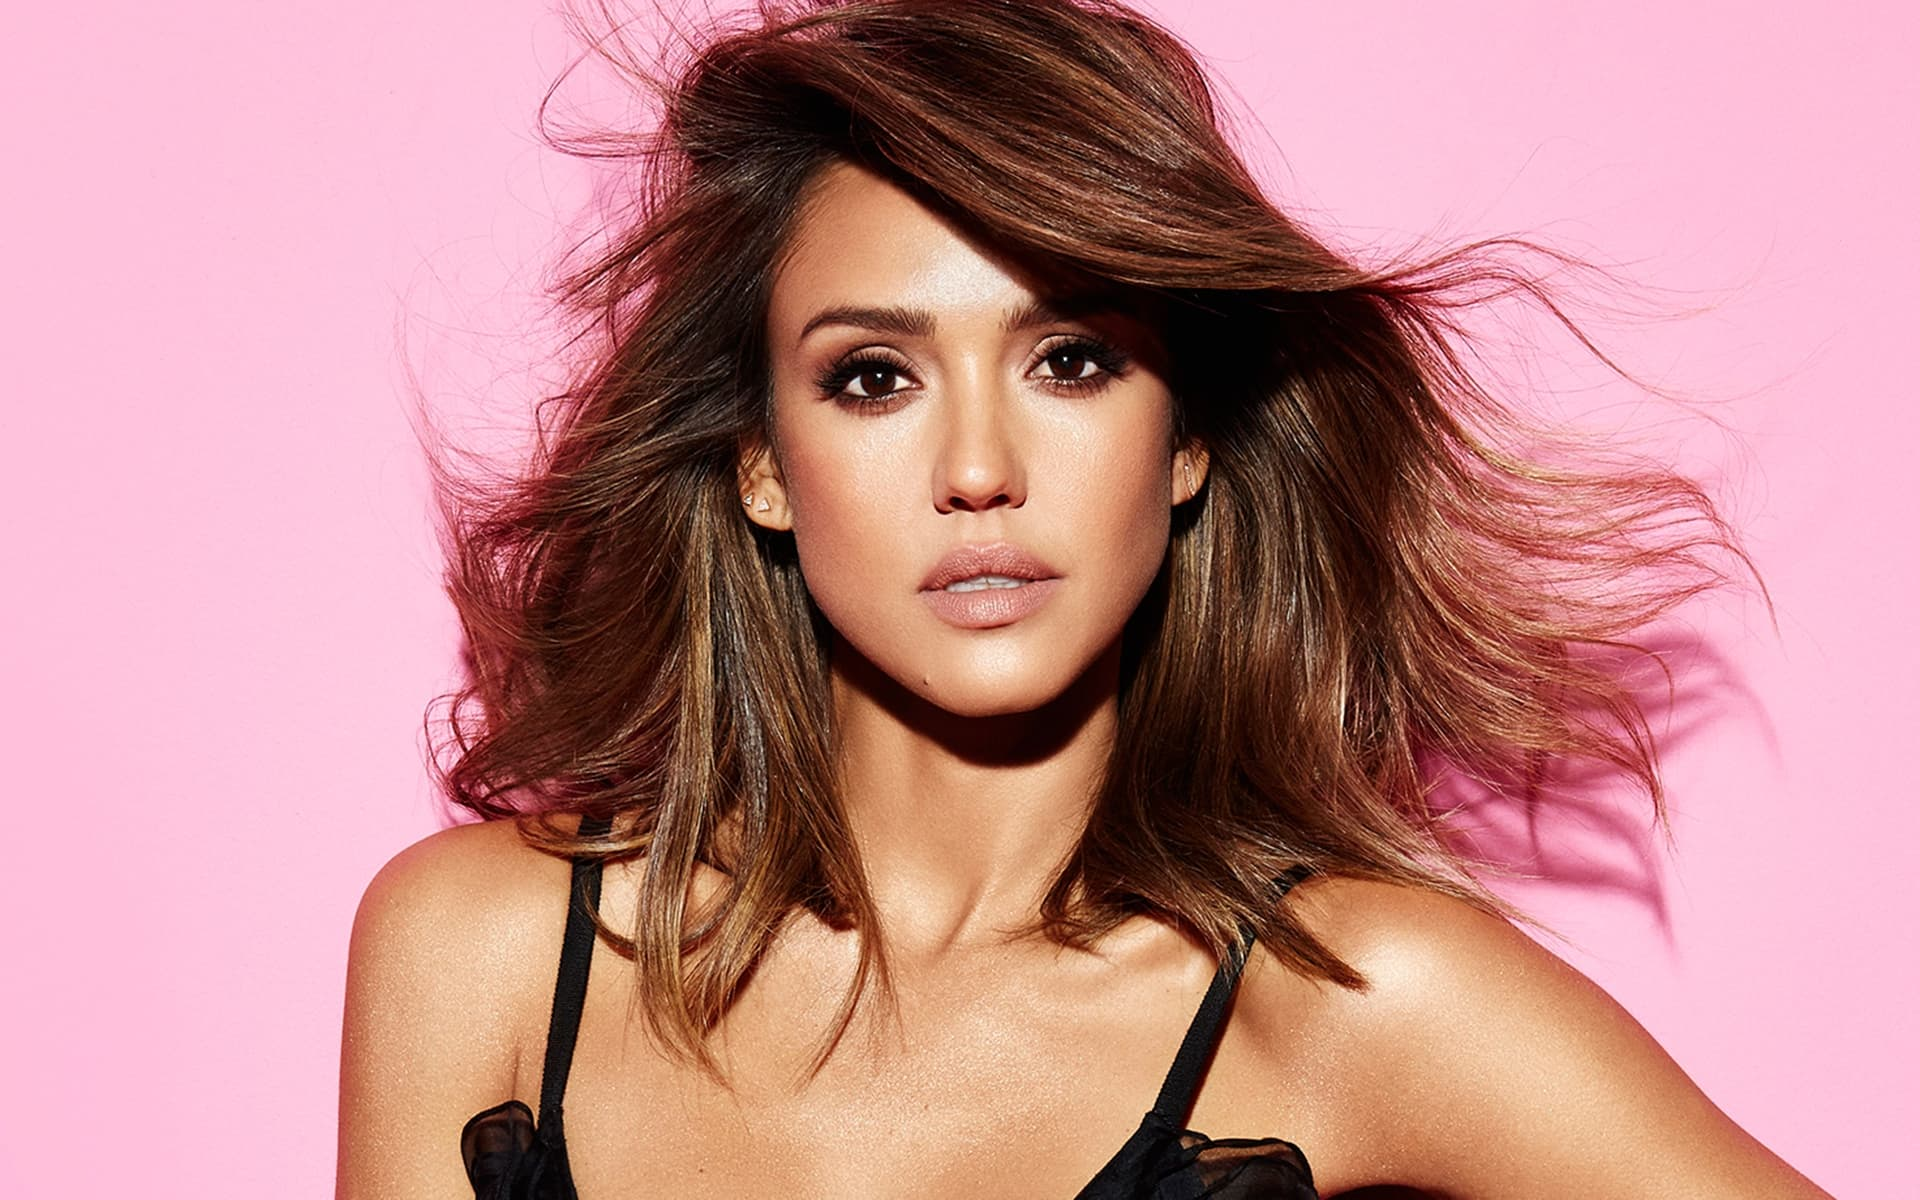 All Car Hd Wallpaper Download 25 Jessica Alba Wallpapers High Quality Resolution Download